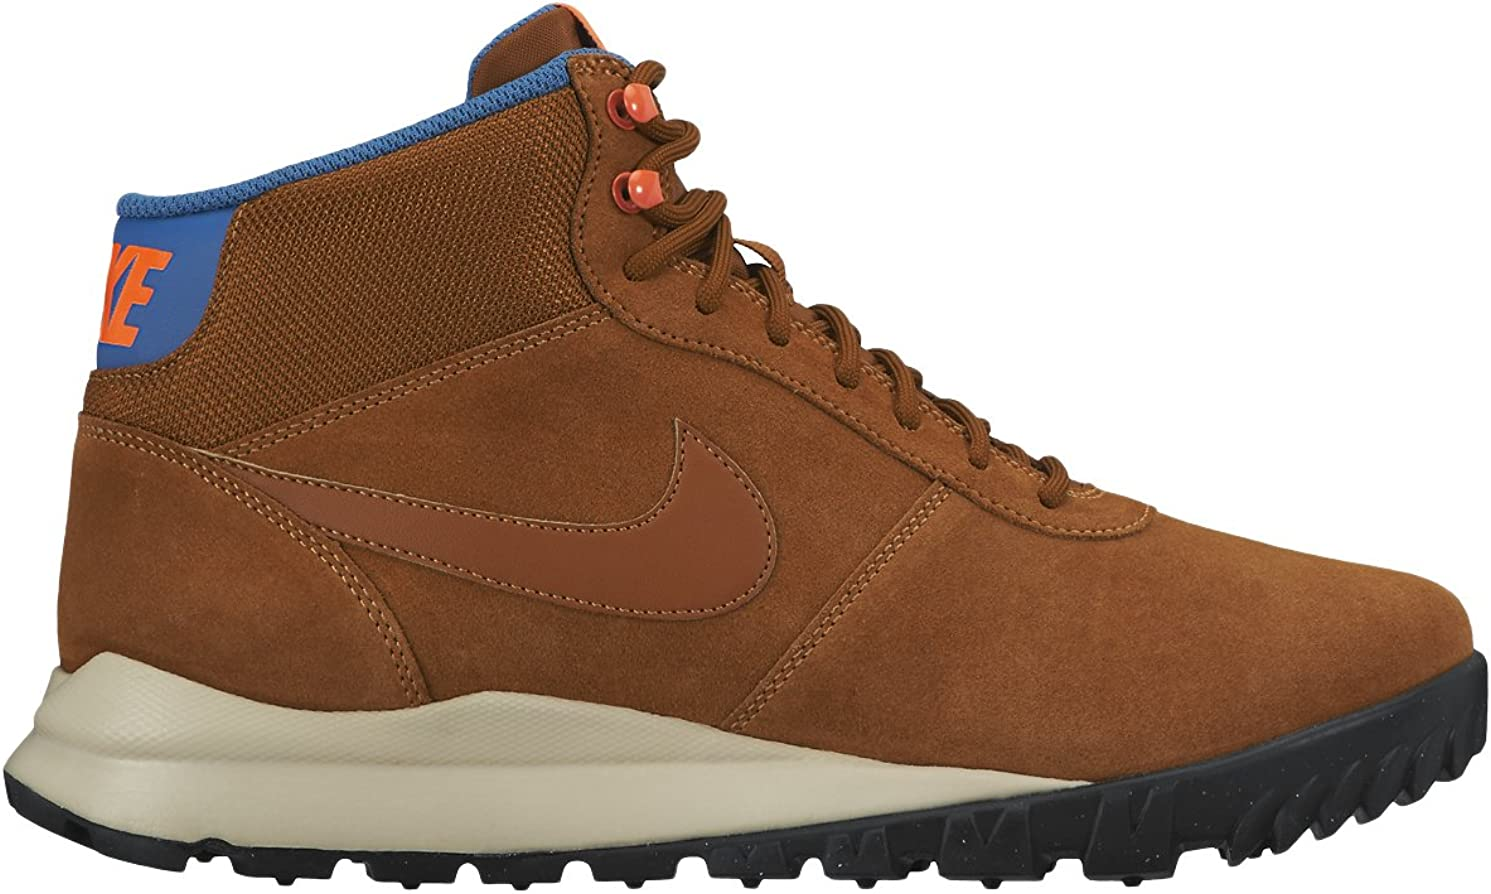 NIKE Mens Hoodland Suede Boots #654888 284